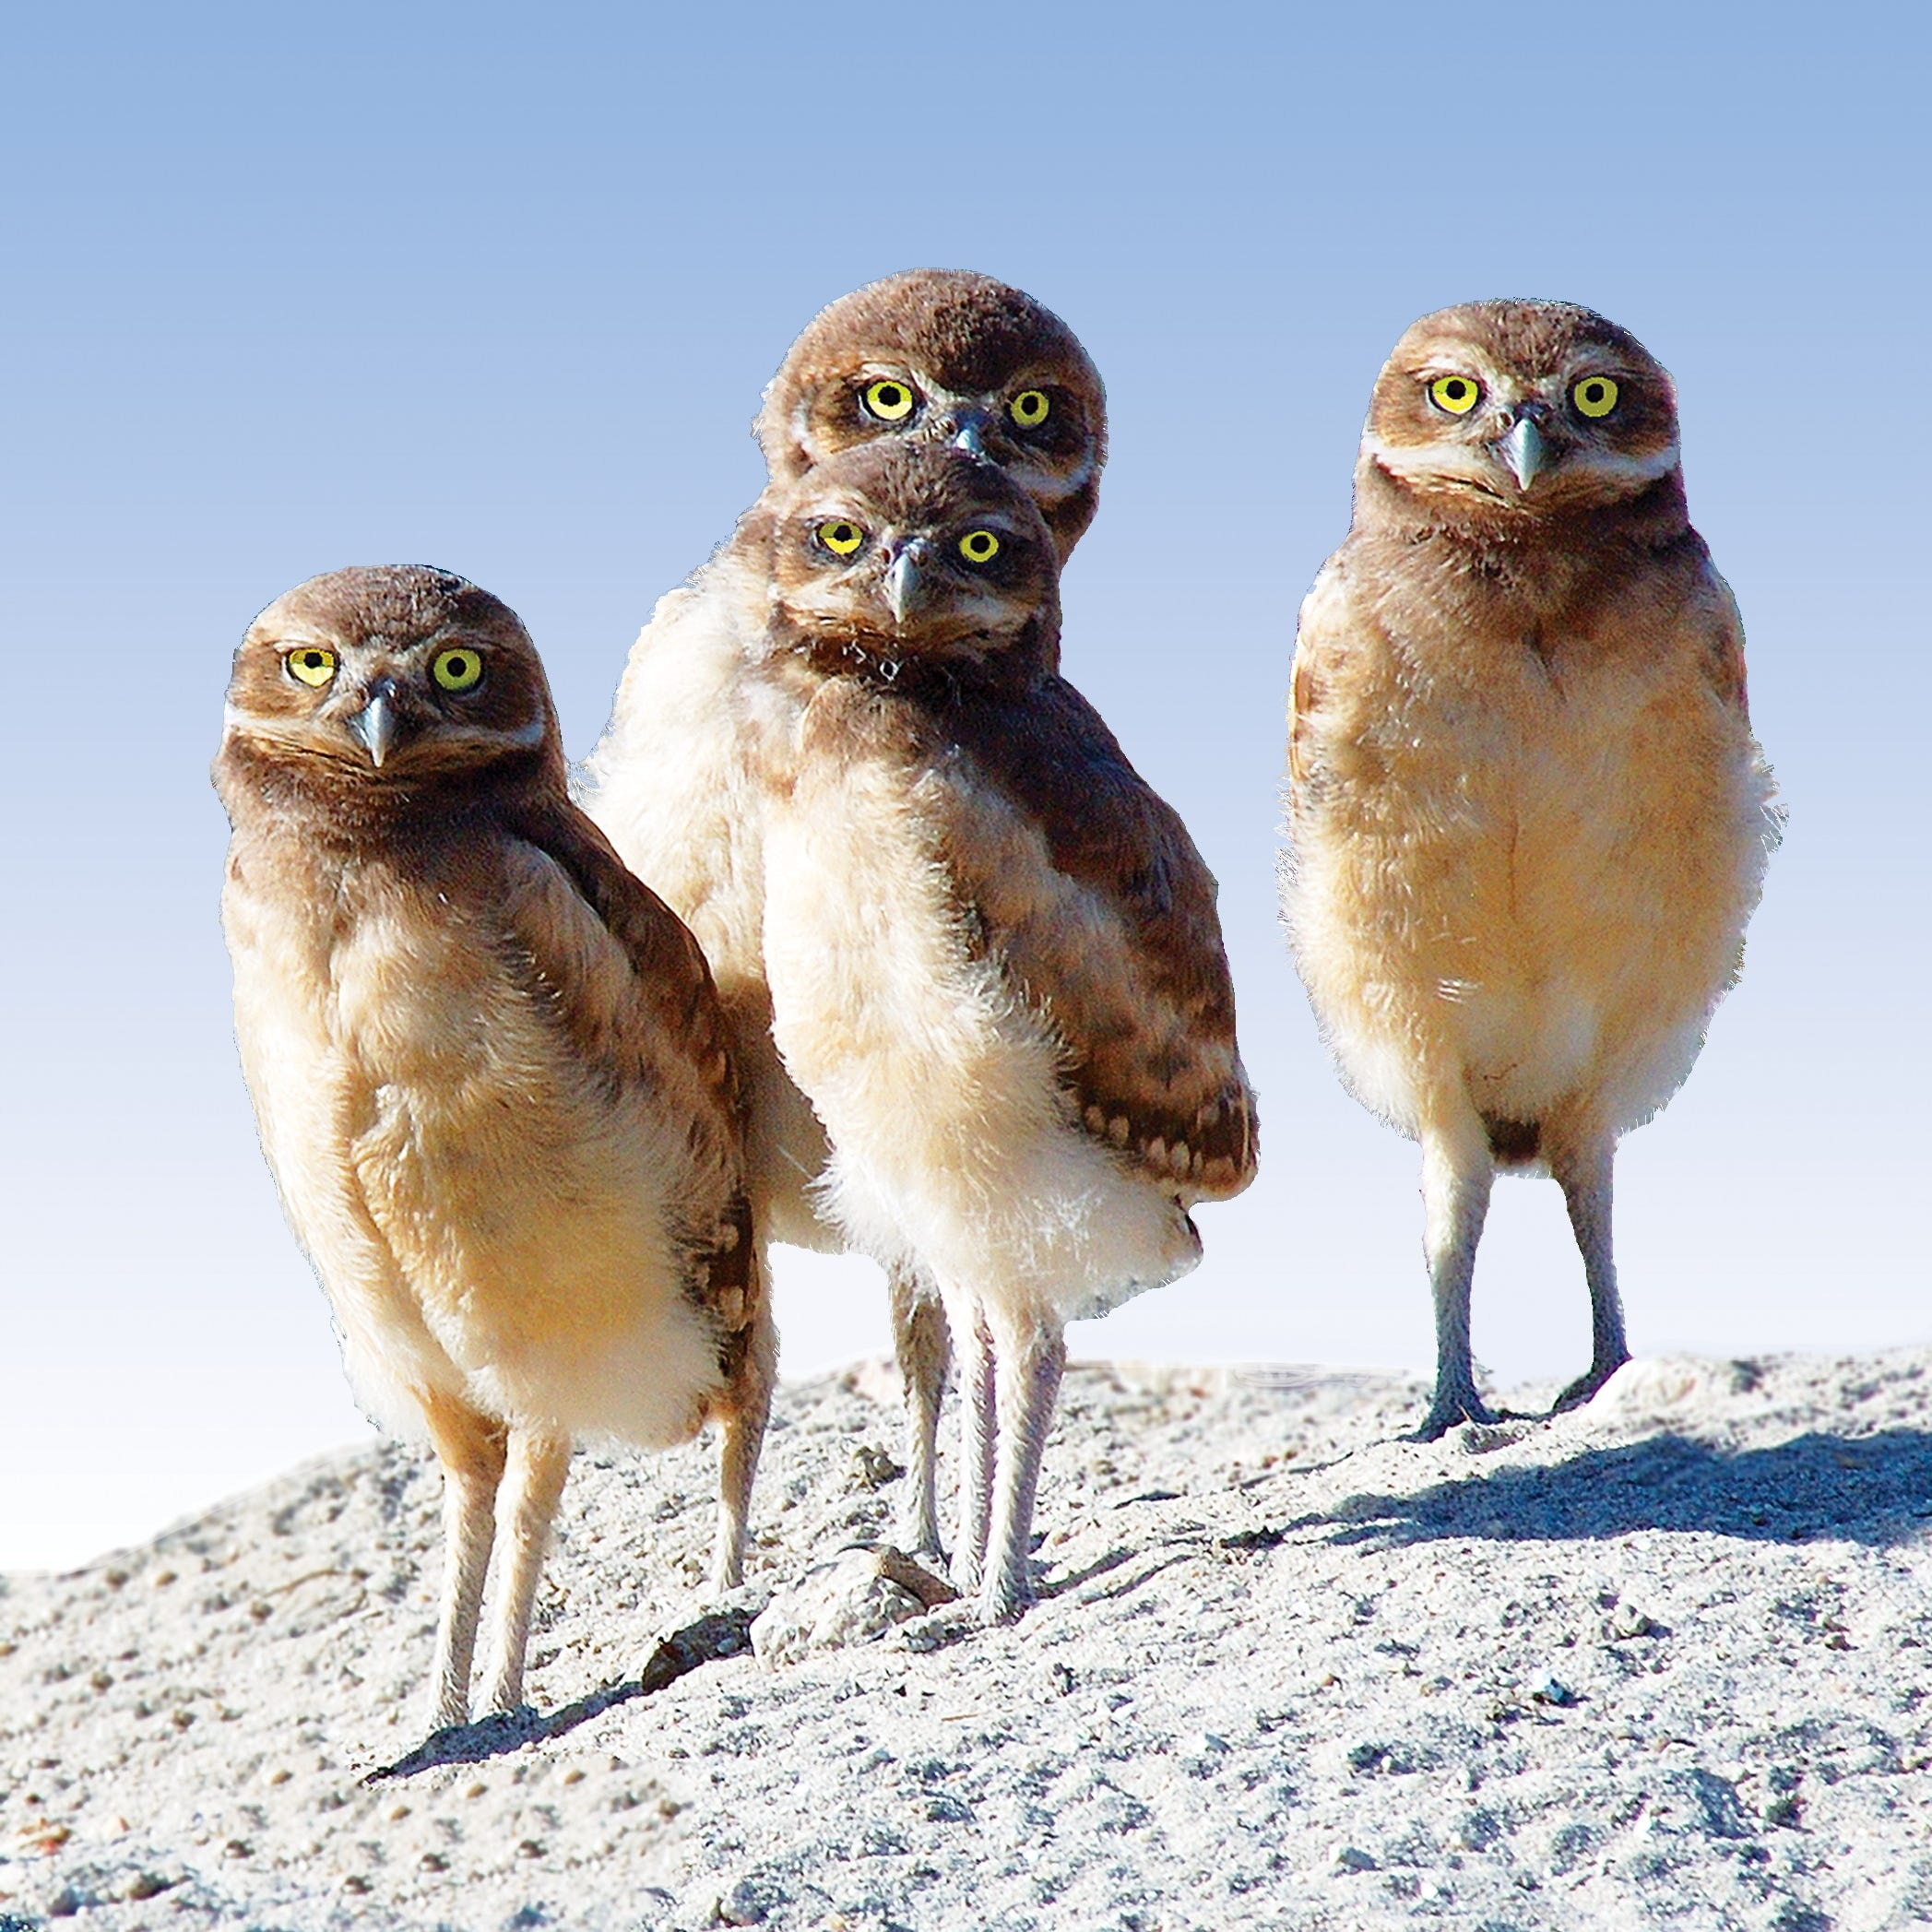 Burrowing owls find their own way to stay cool in the California desert